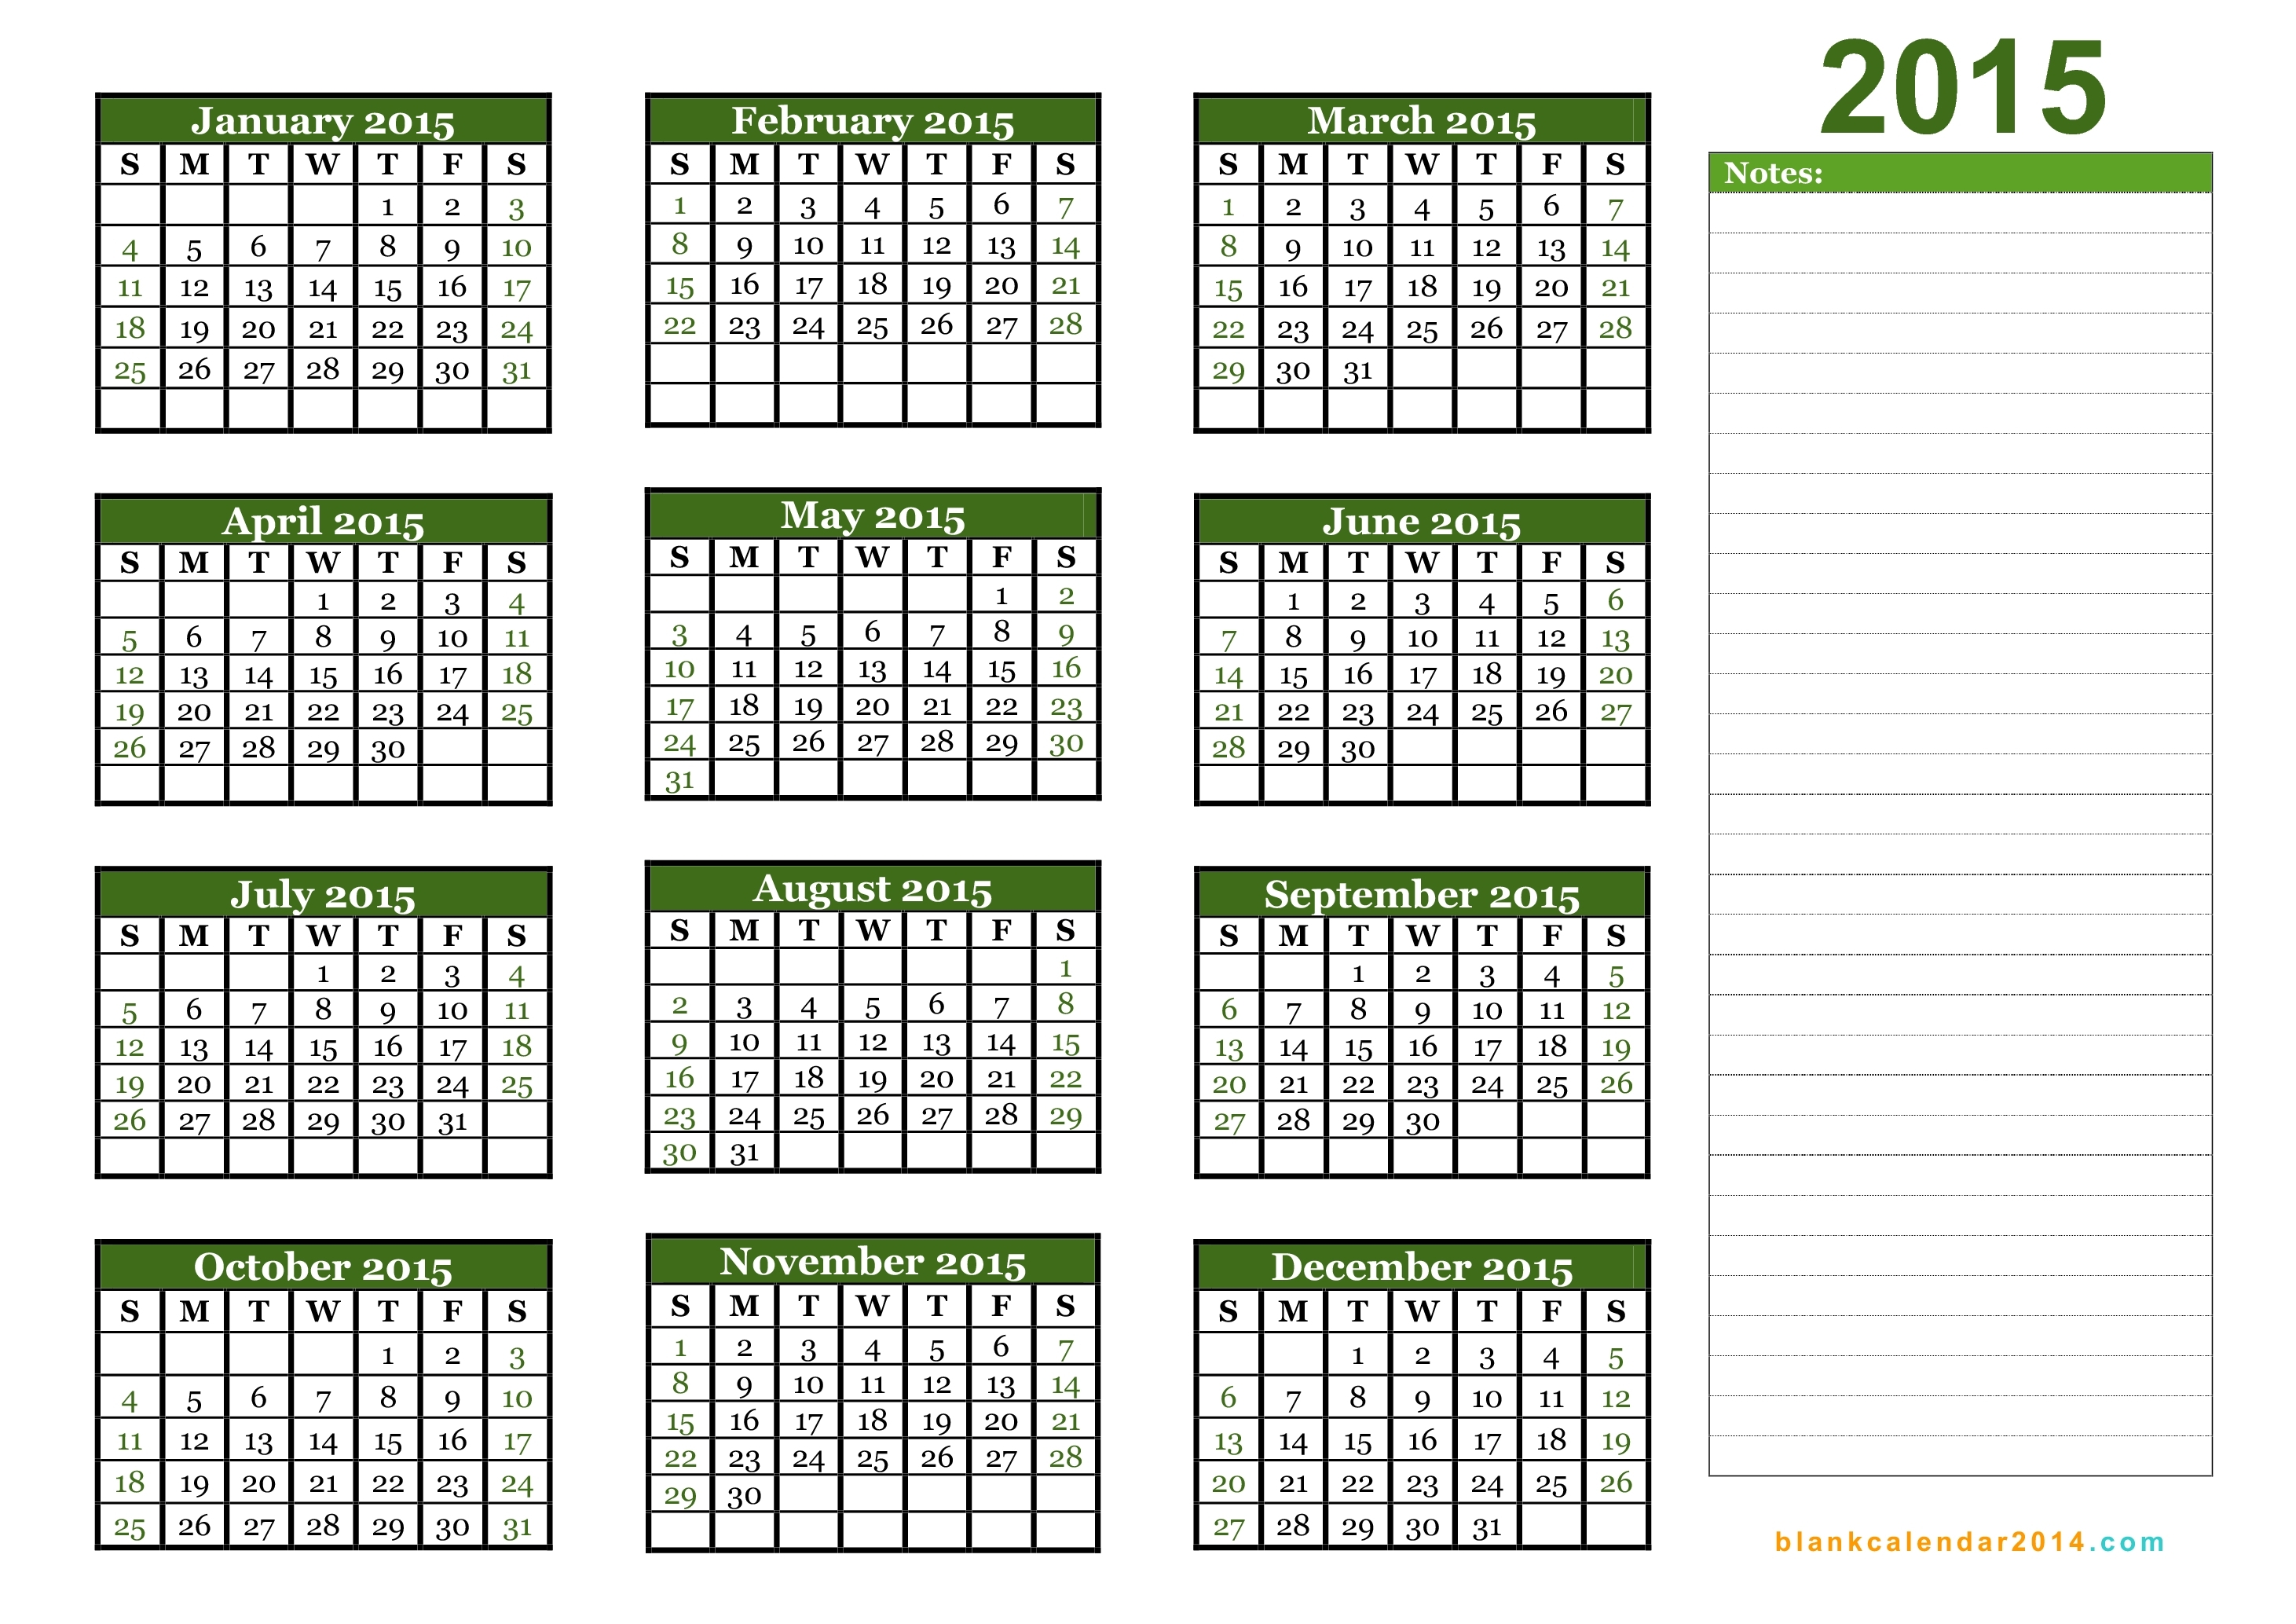 Julian Calendar 2015 | Printable 2017 Calendars throughout Julian Year Calendar 2015 Printable